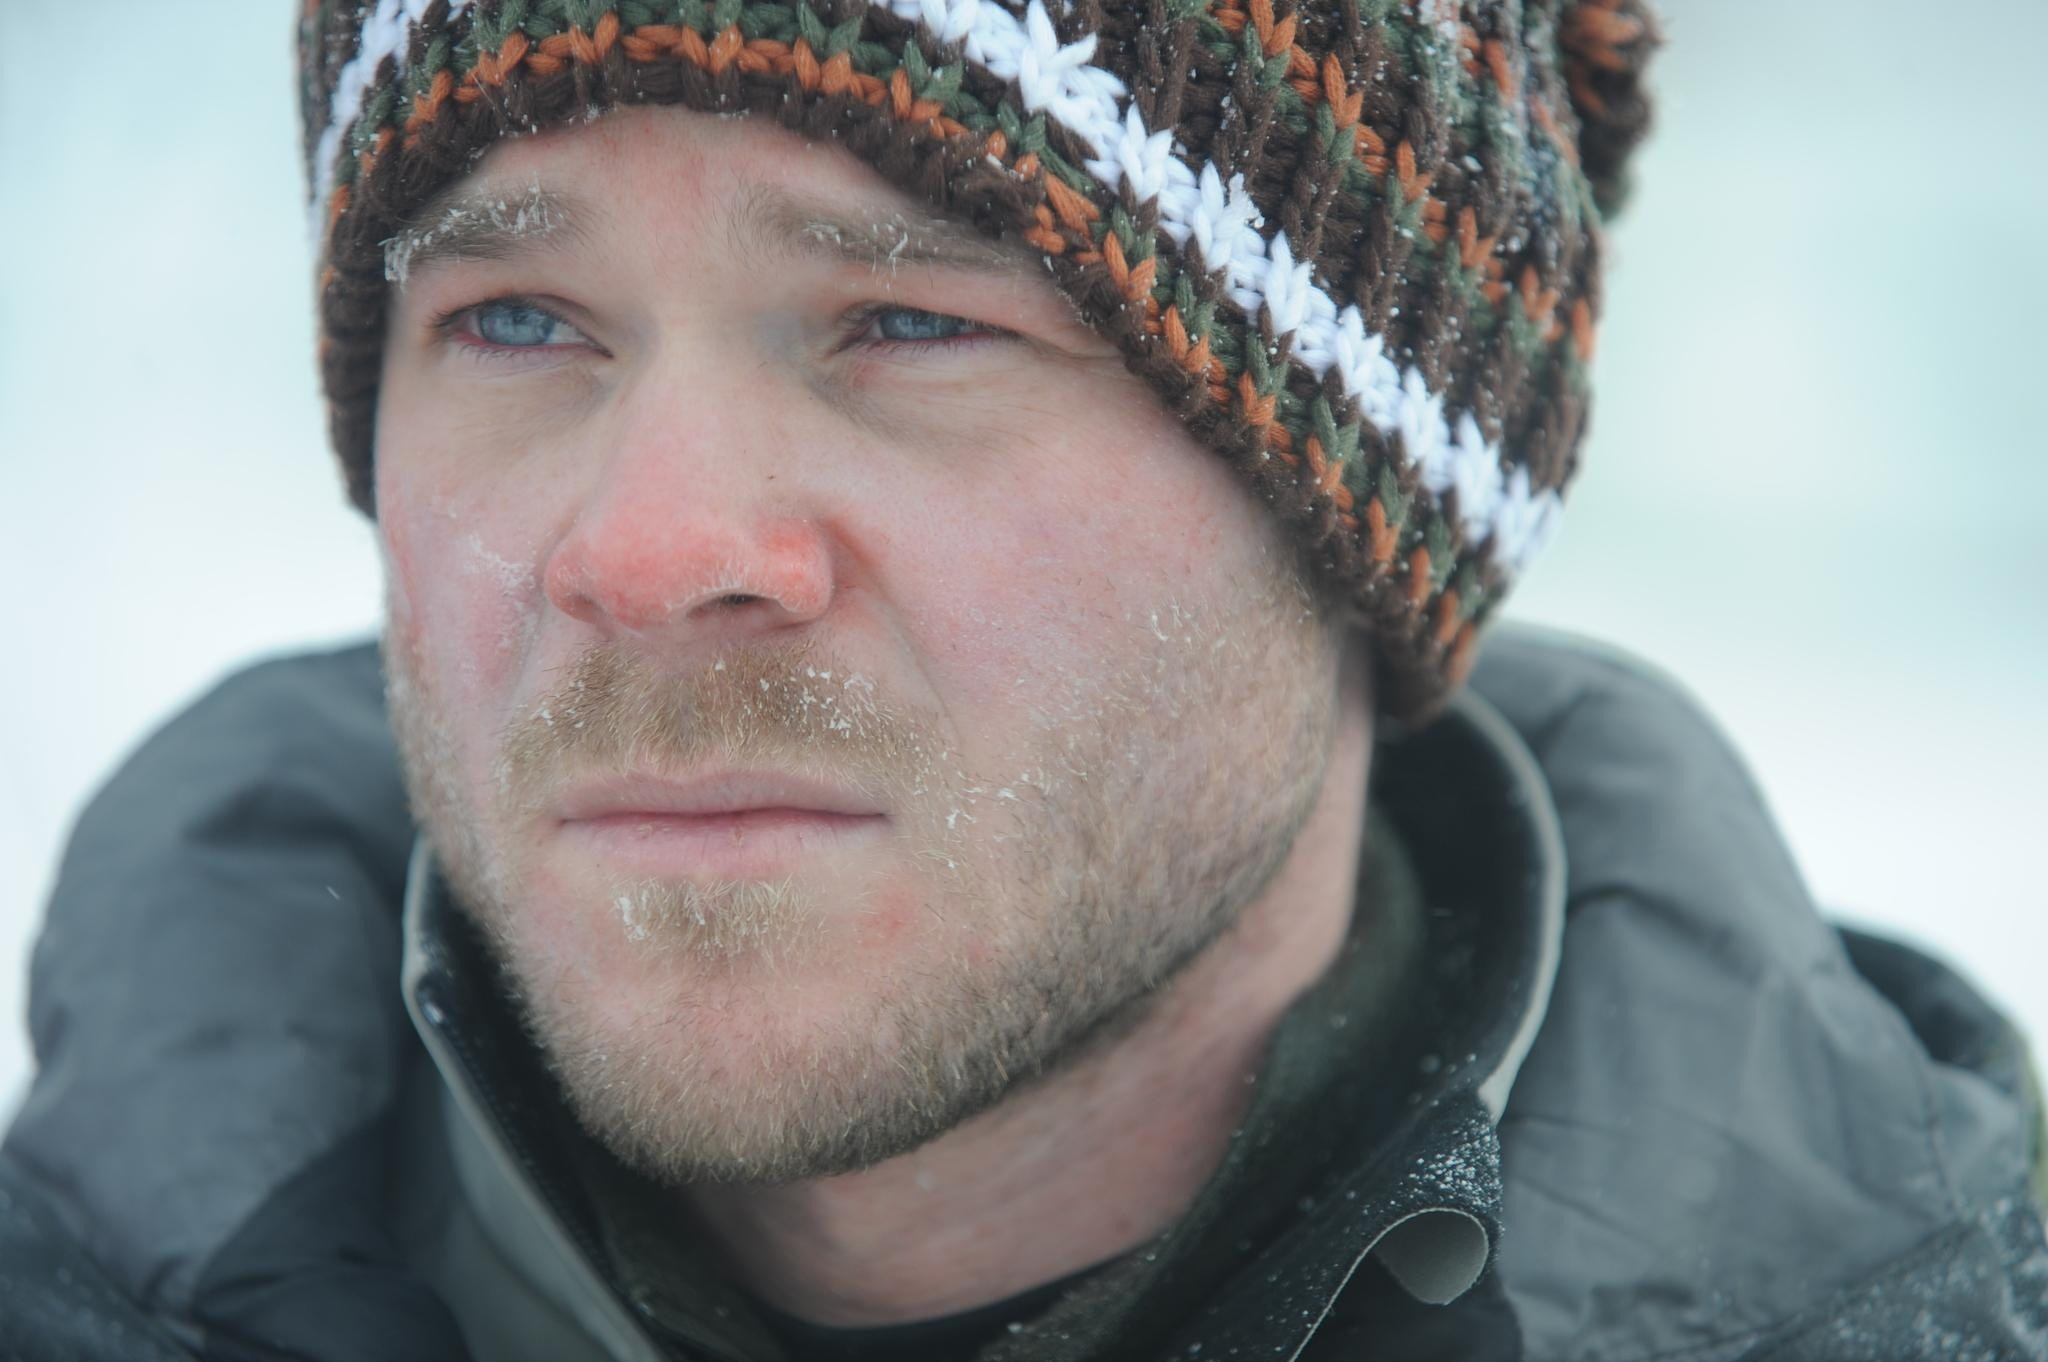 2048x1362 - Shawn Ashmore Wallpapers 11